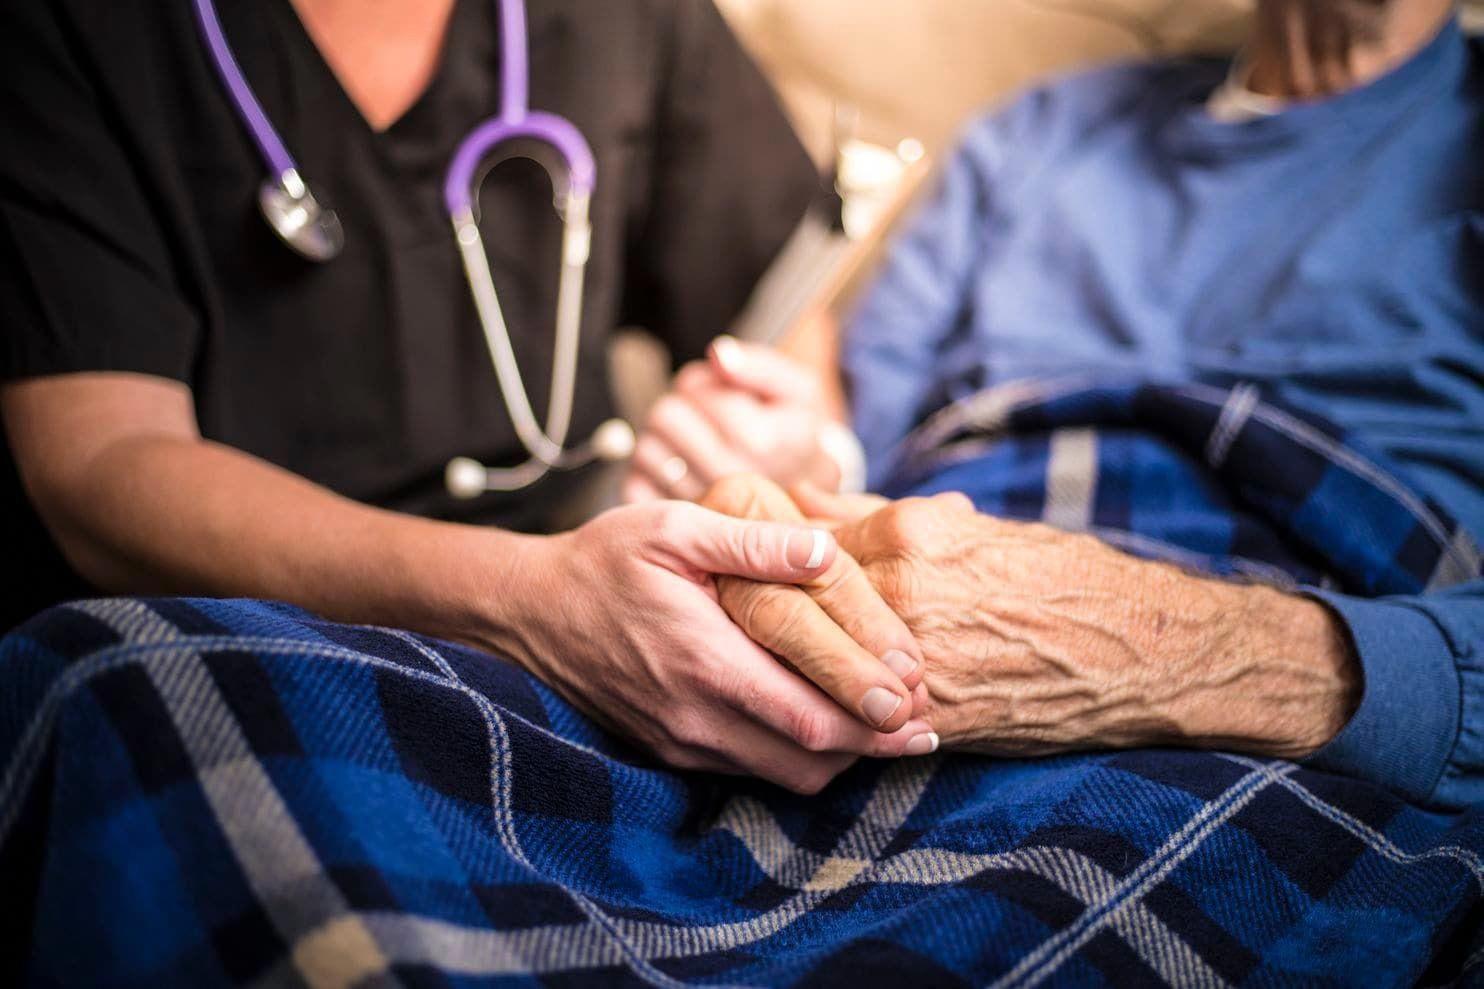 Pin On Tips For Elderly Caregivers